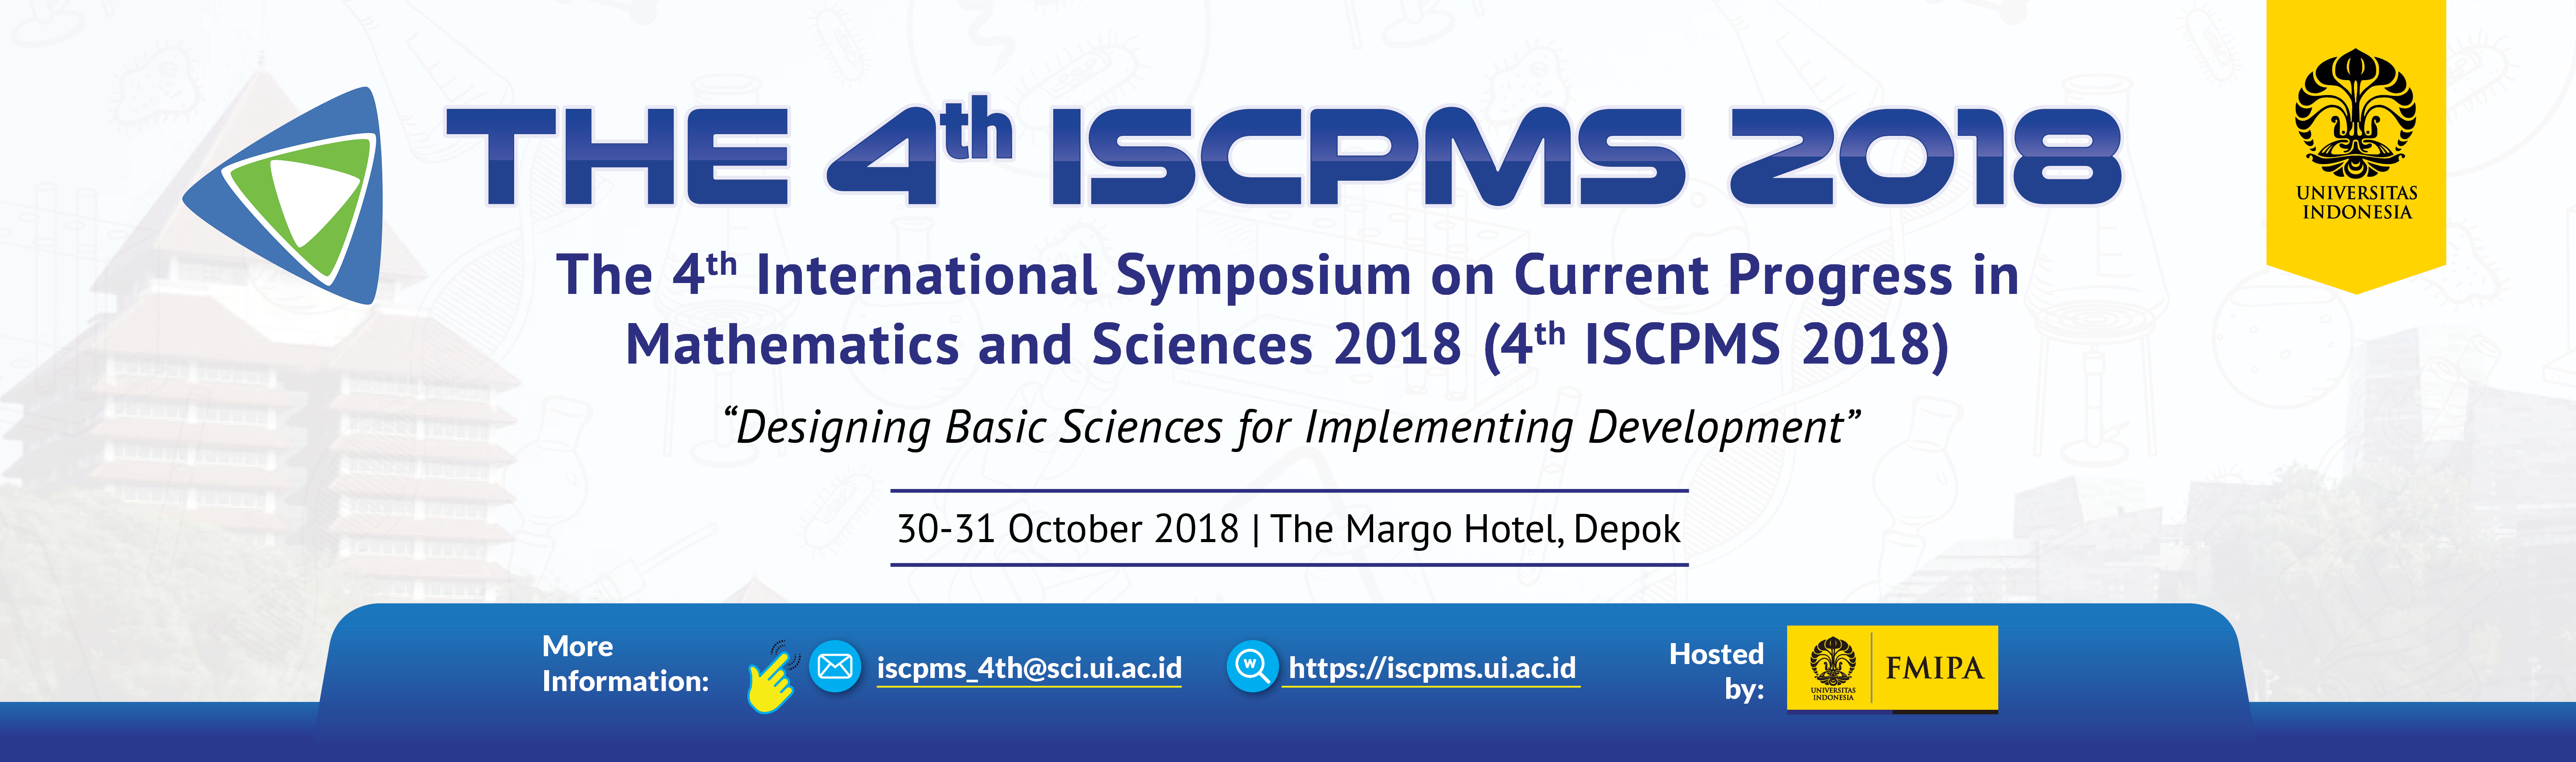 Web-Banner-ISCPMS-2018_MIPA